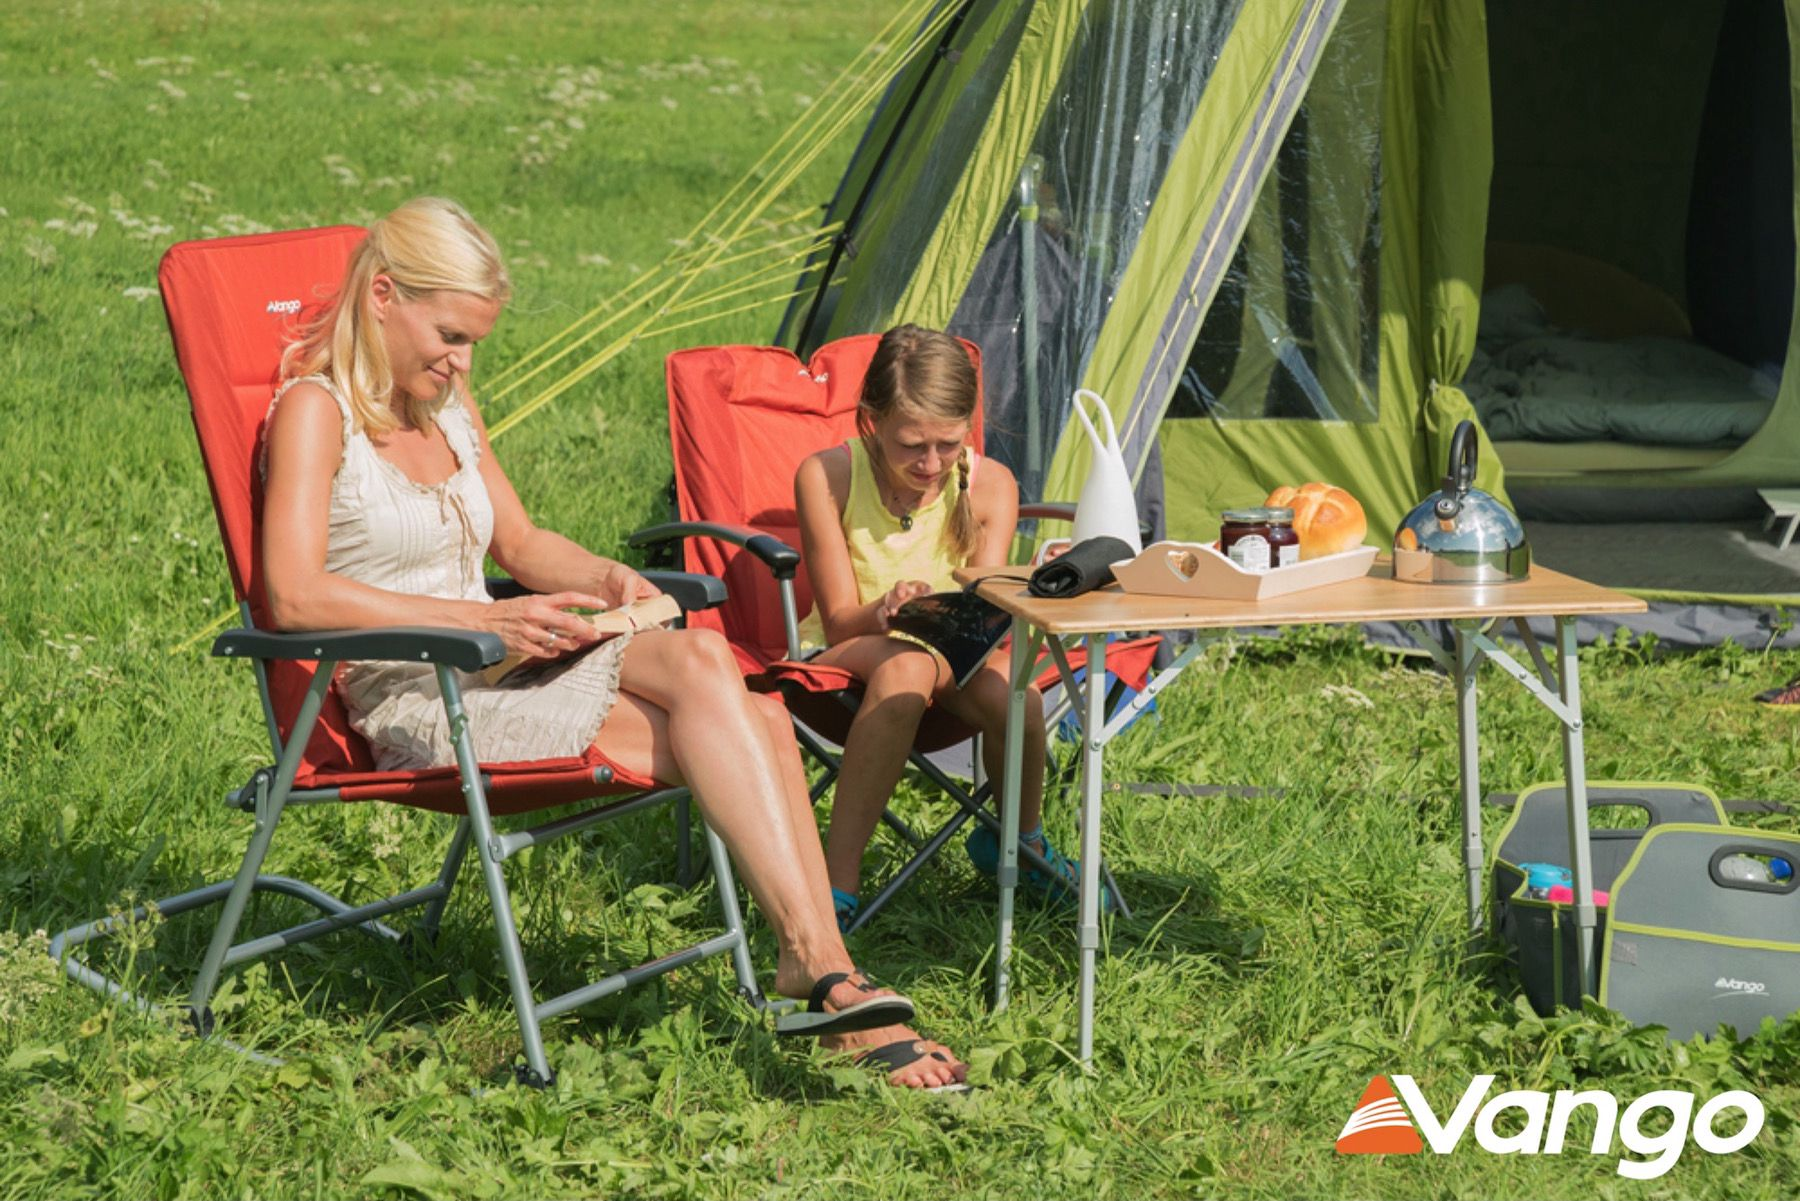 Leading camping brand Vango are providing a bumper prize this summer